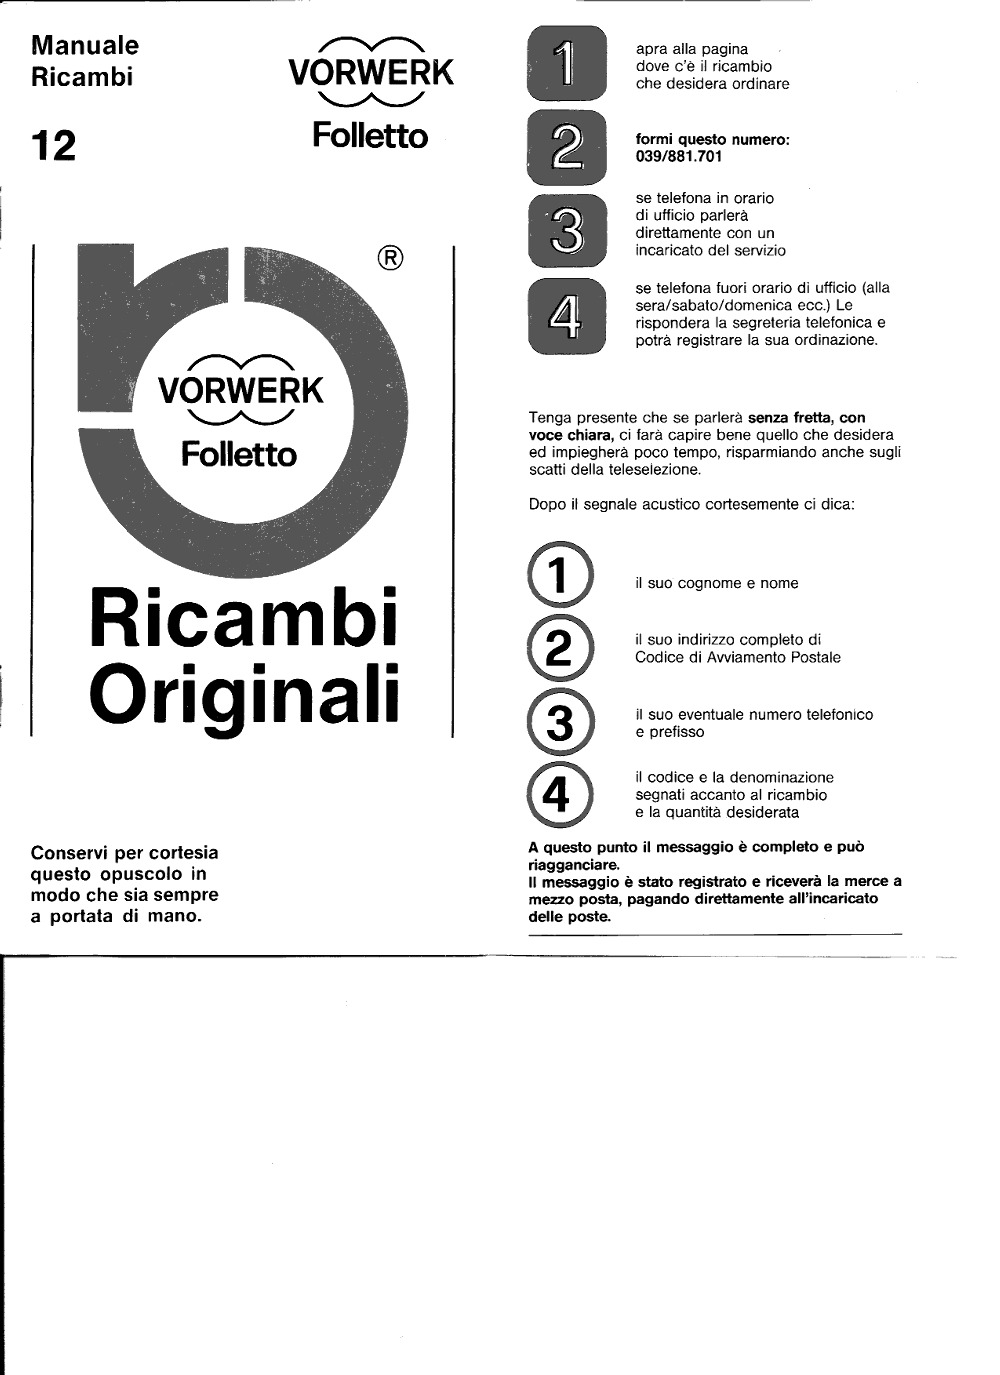 Vorwerk Folletto Spare Parts Manual #12